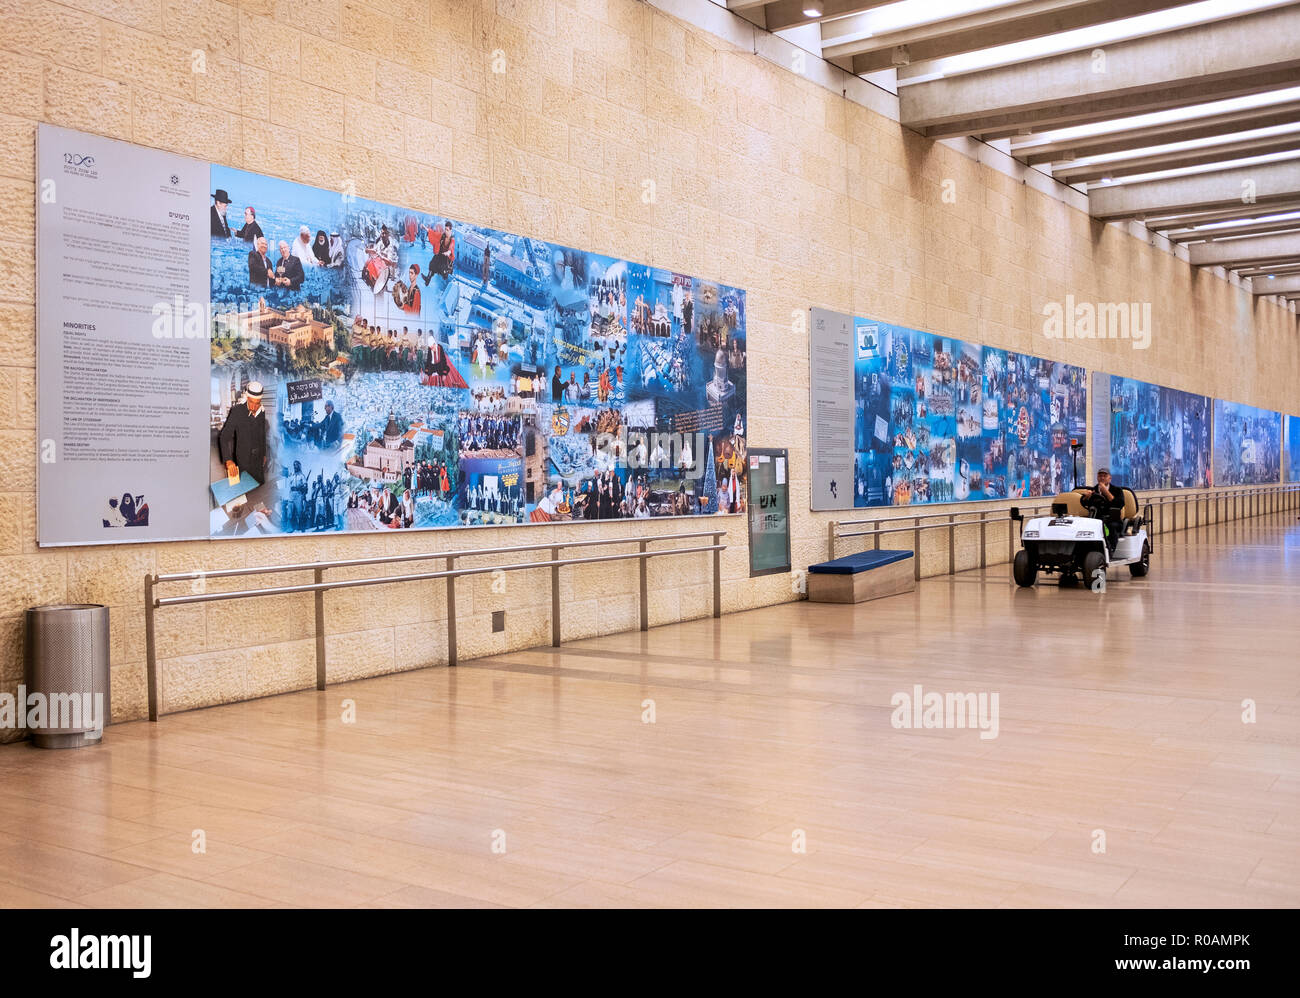 A vehicle passes one of the '120 Years of Zionism' murals at Ben Gurion Airport in Tel Aviv, Israel. - Stock Image